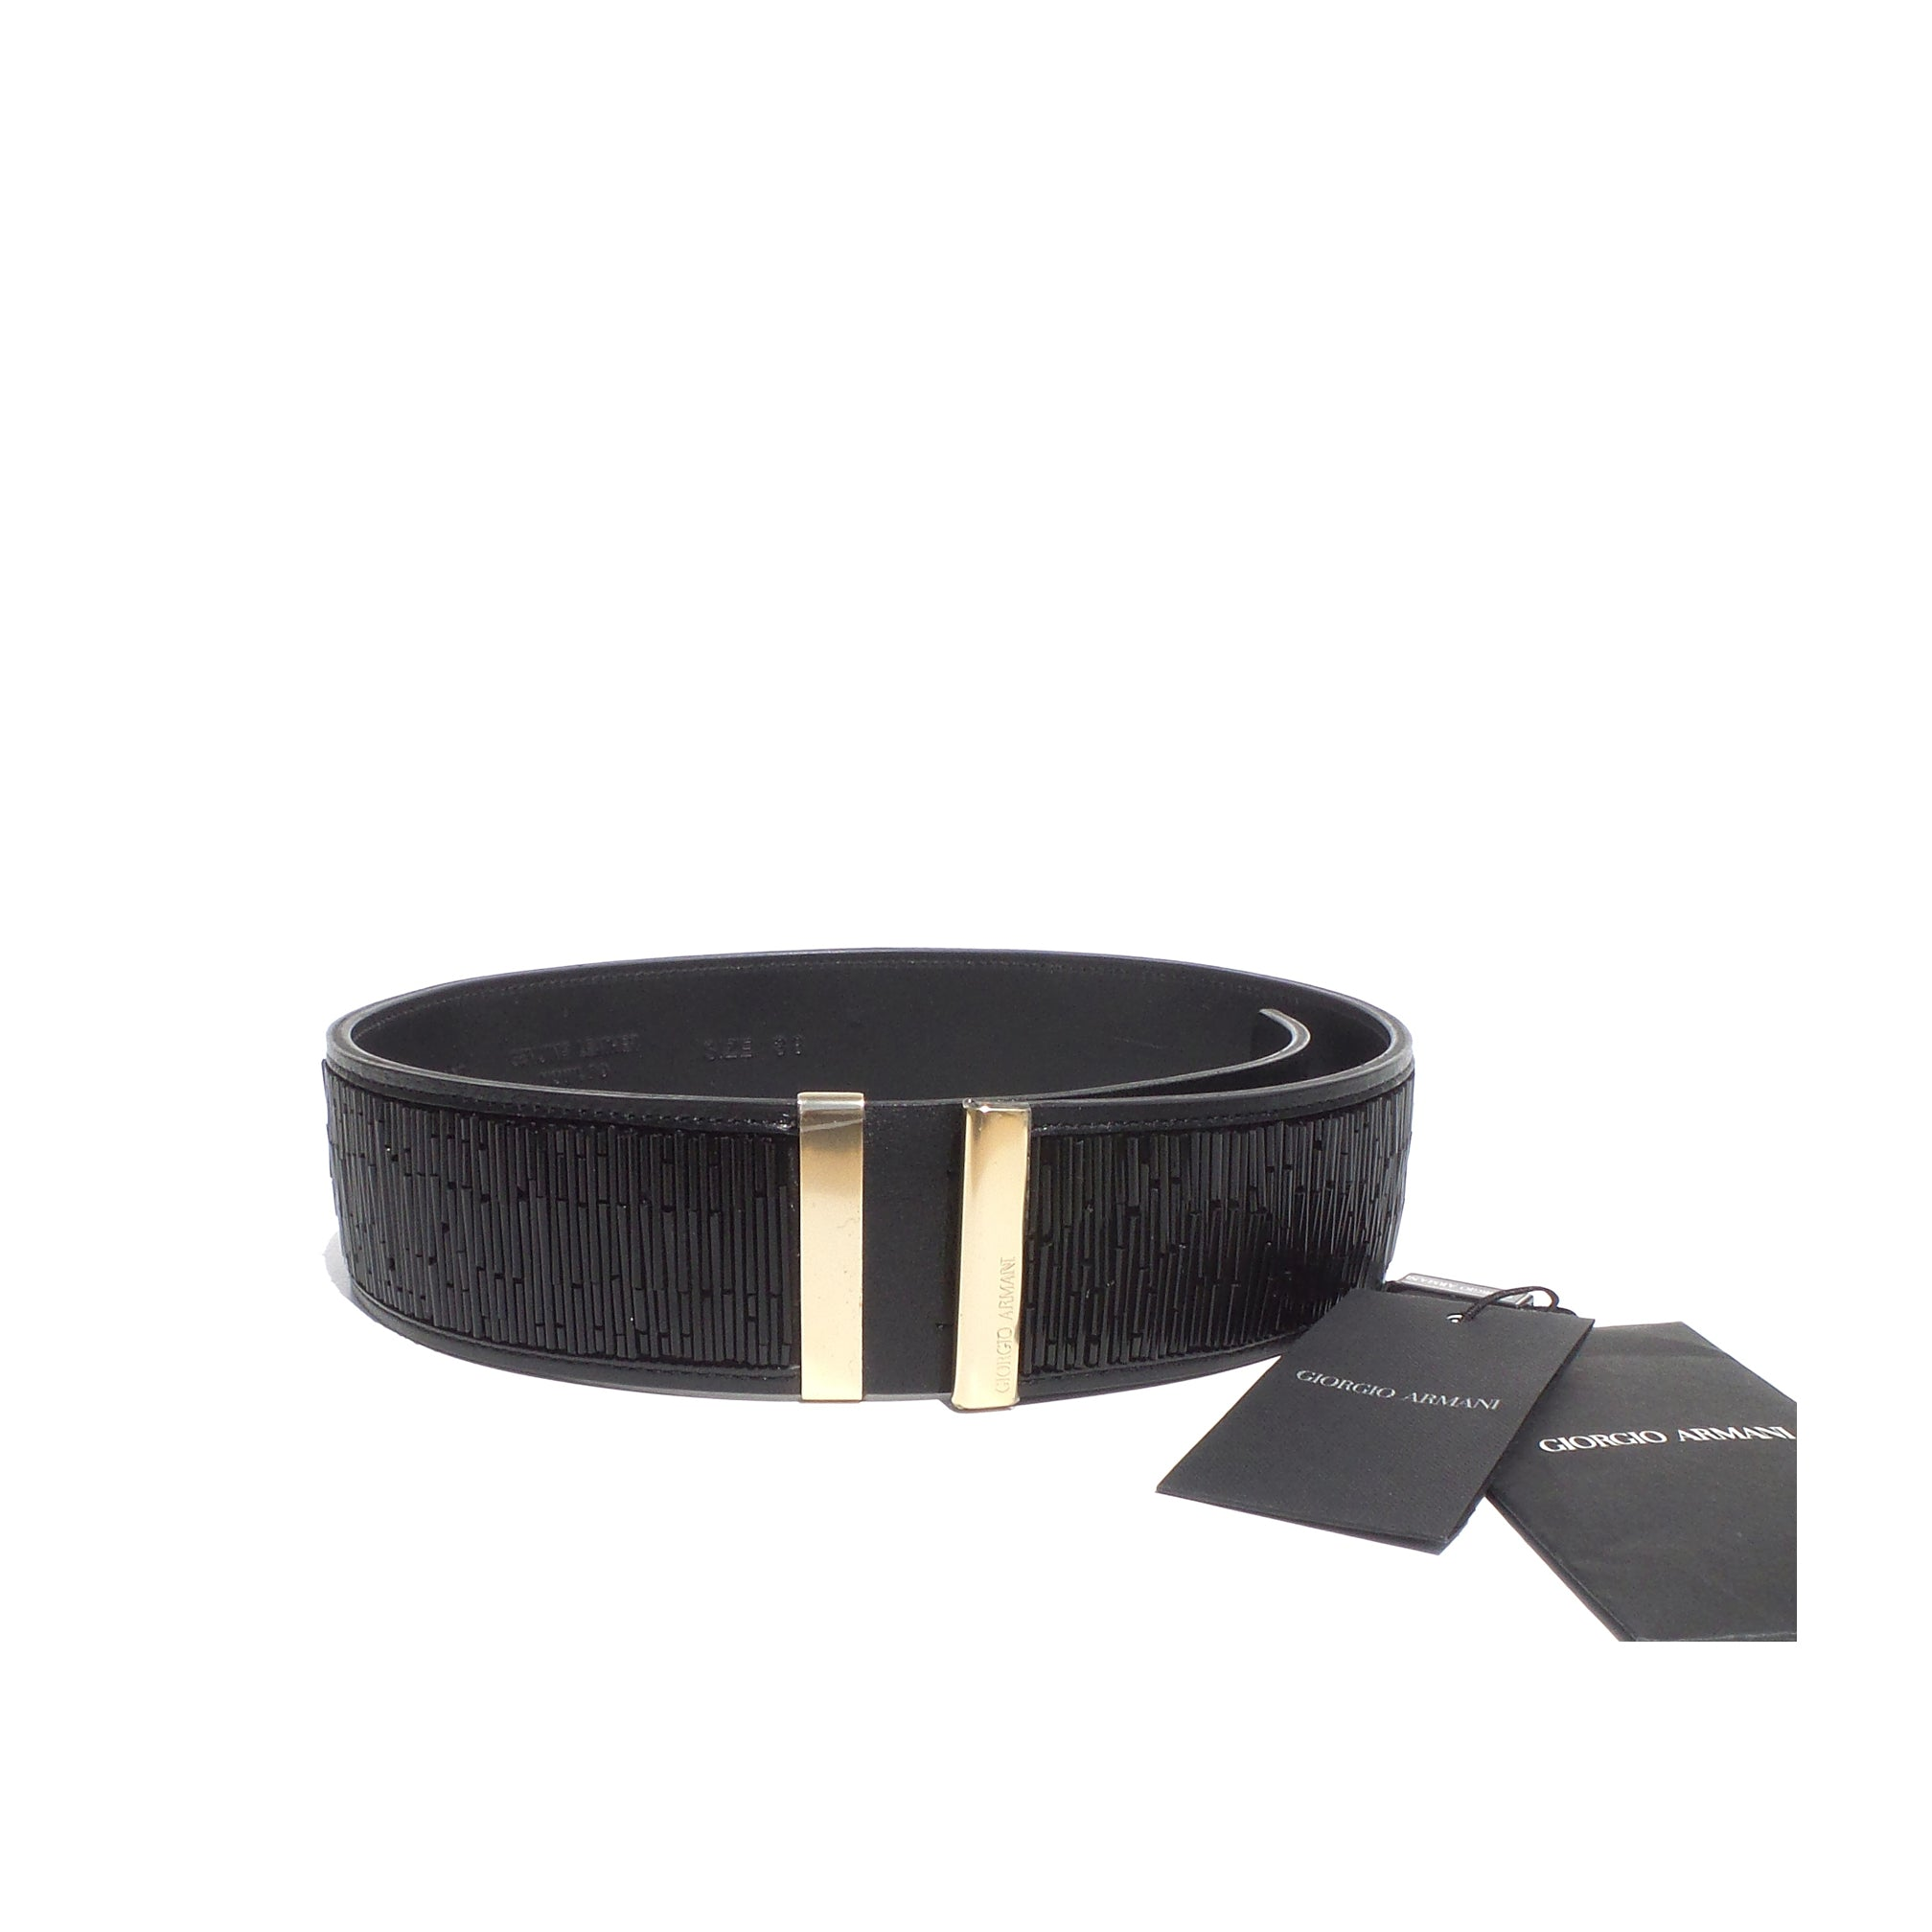 GIORGIO ARMANI Black Leather Beaded Gold Tone Metal Wide Waist Belt 38 24 $650